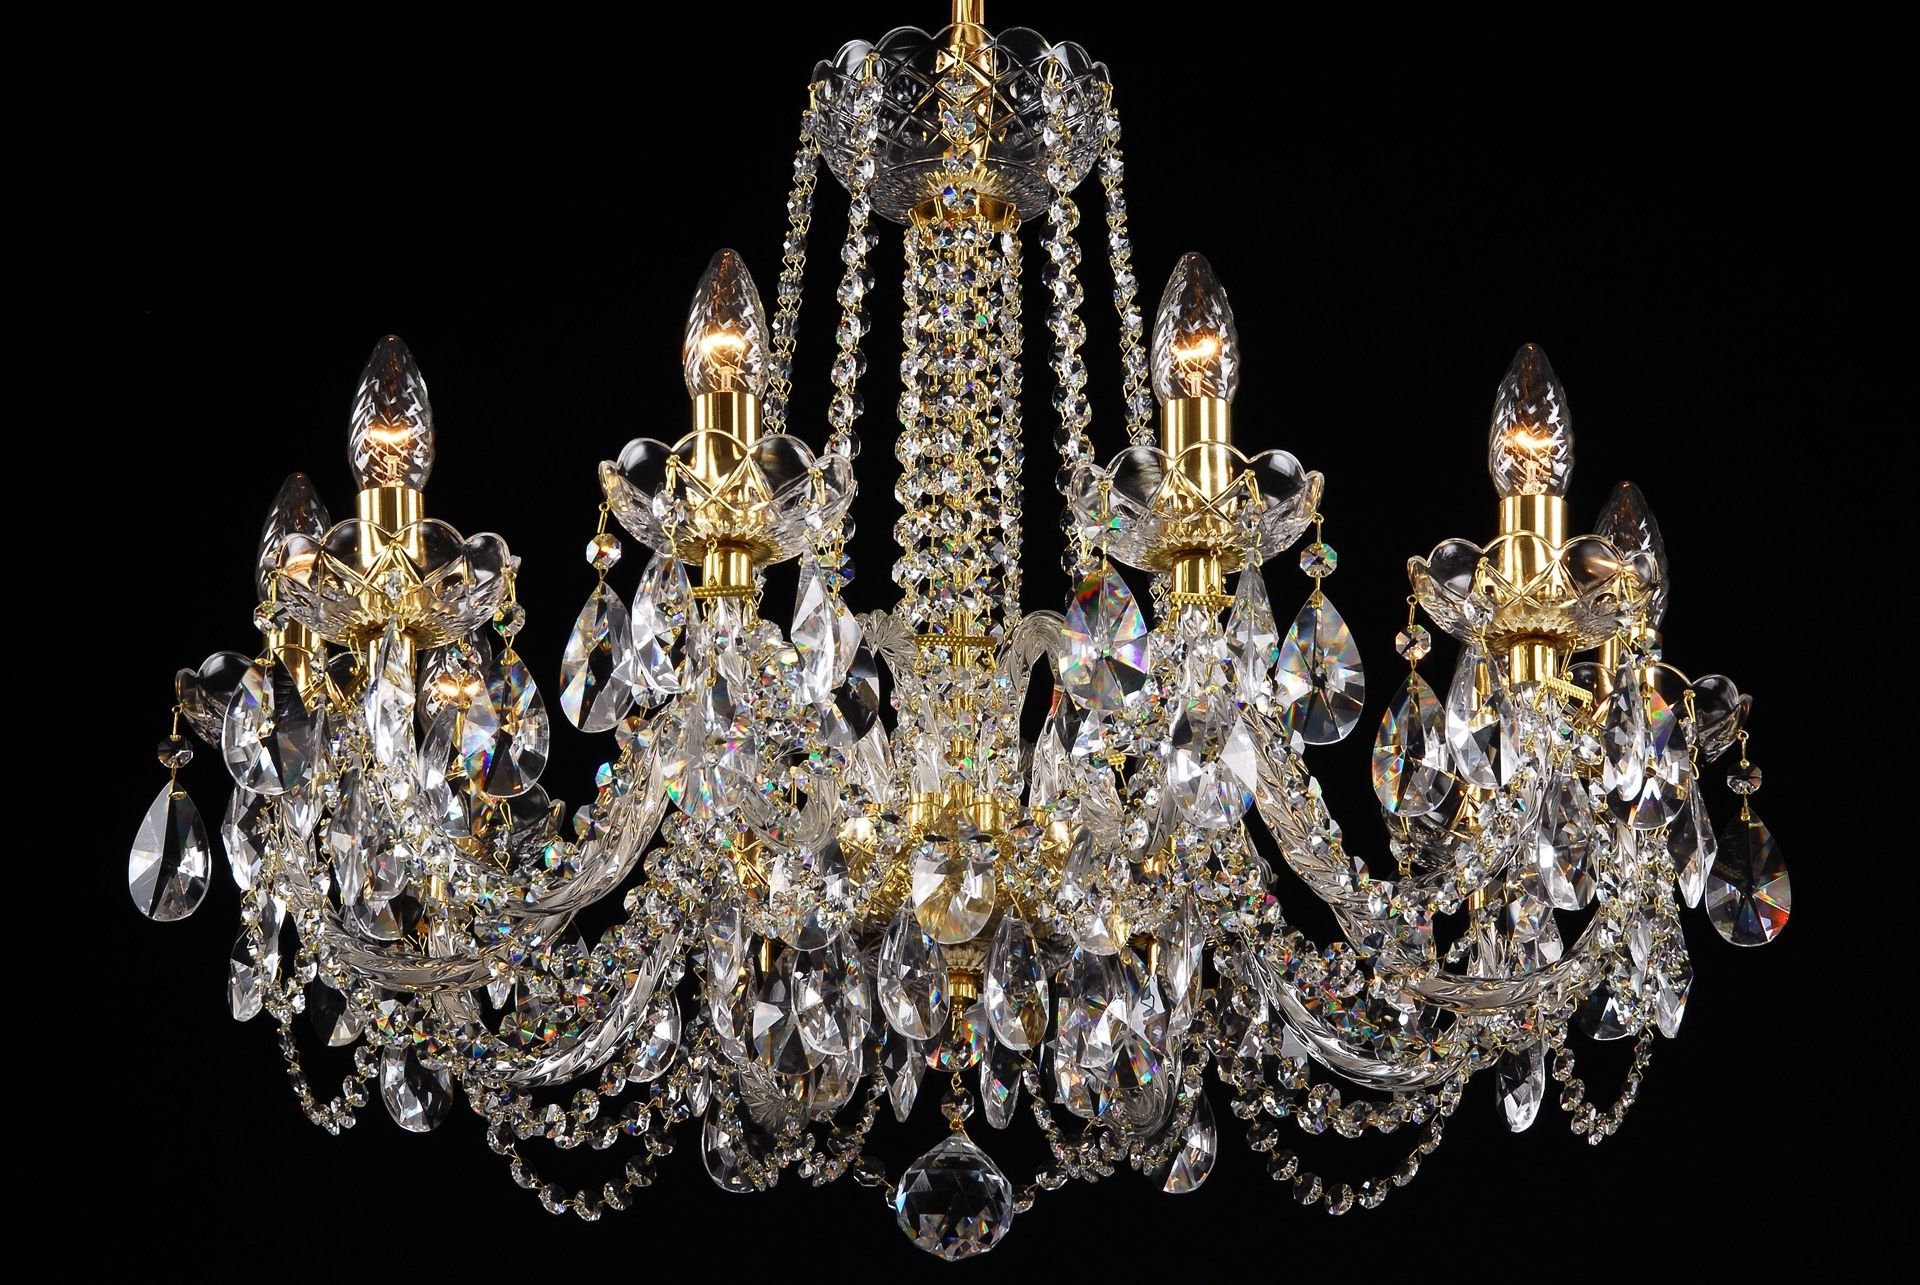 Coloured Glass Chandelier For Most Popular A Crystal Chandelier With Gold Coloured Metal Suitable For Interiors (View 19 of 20)